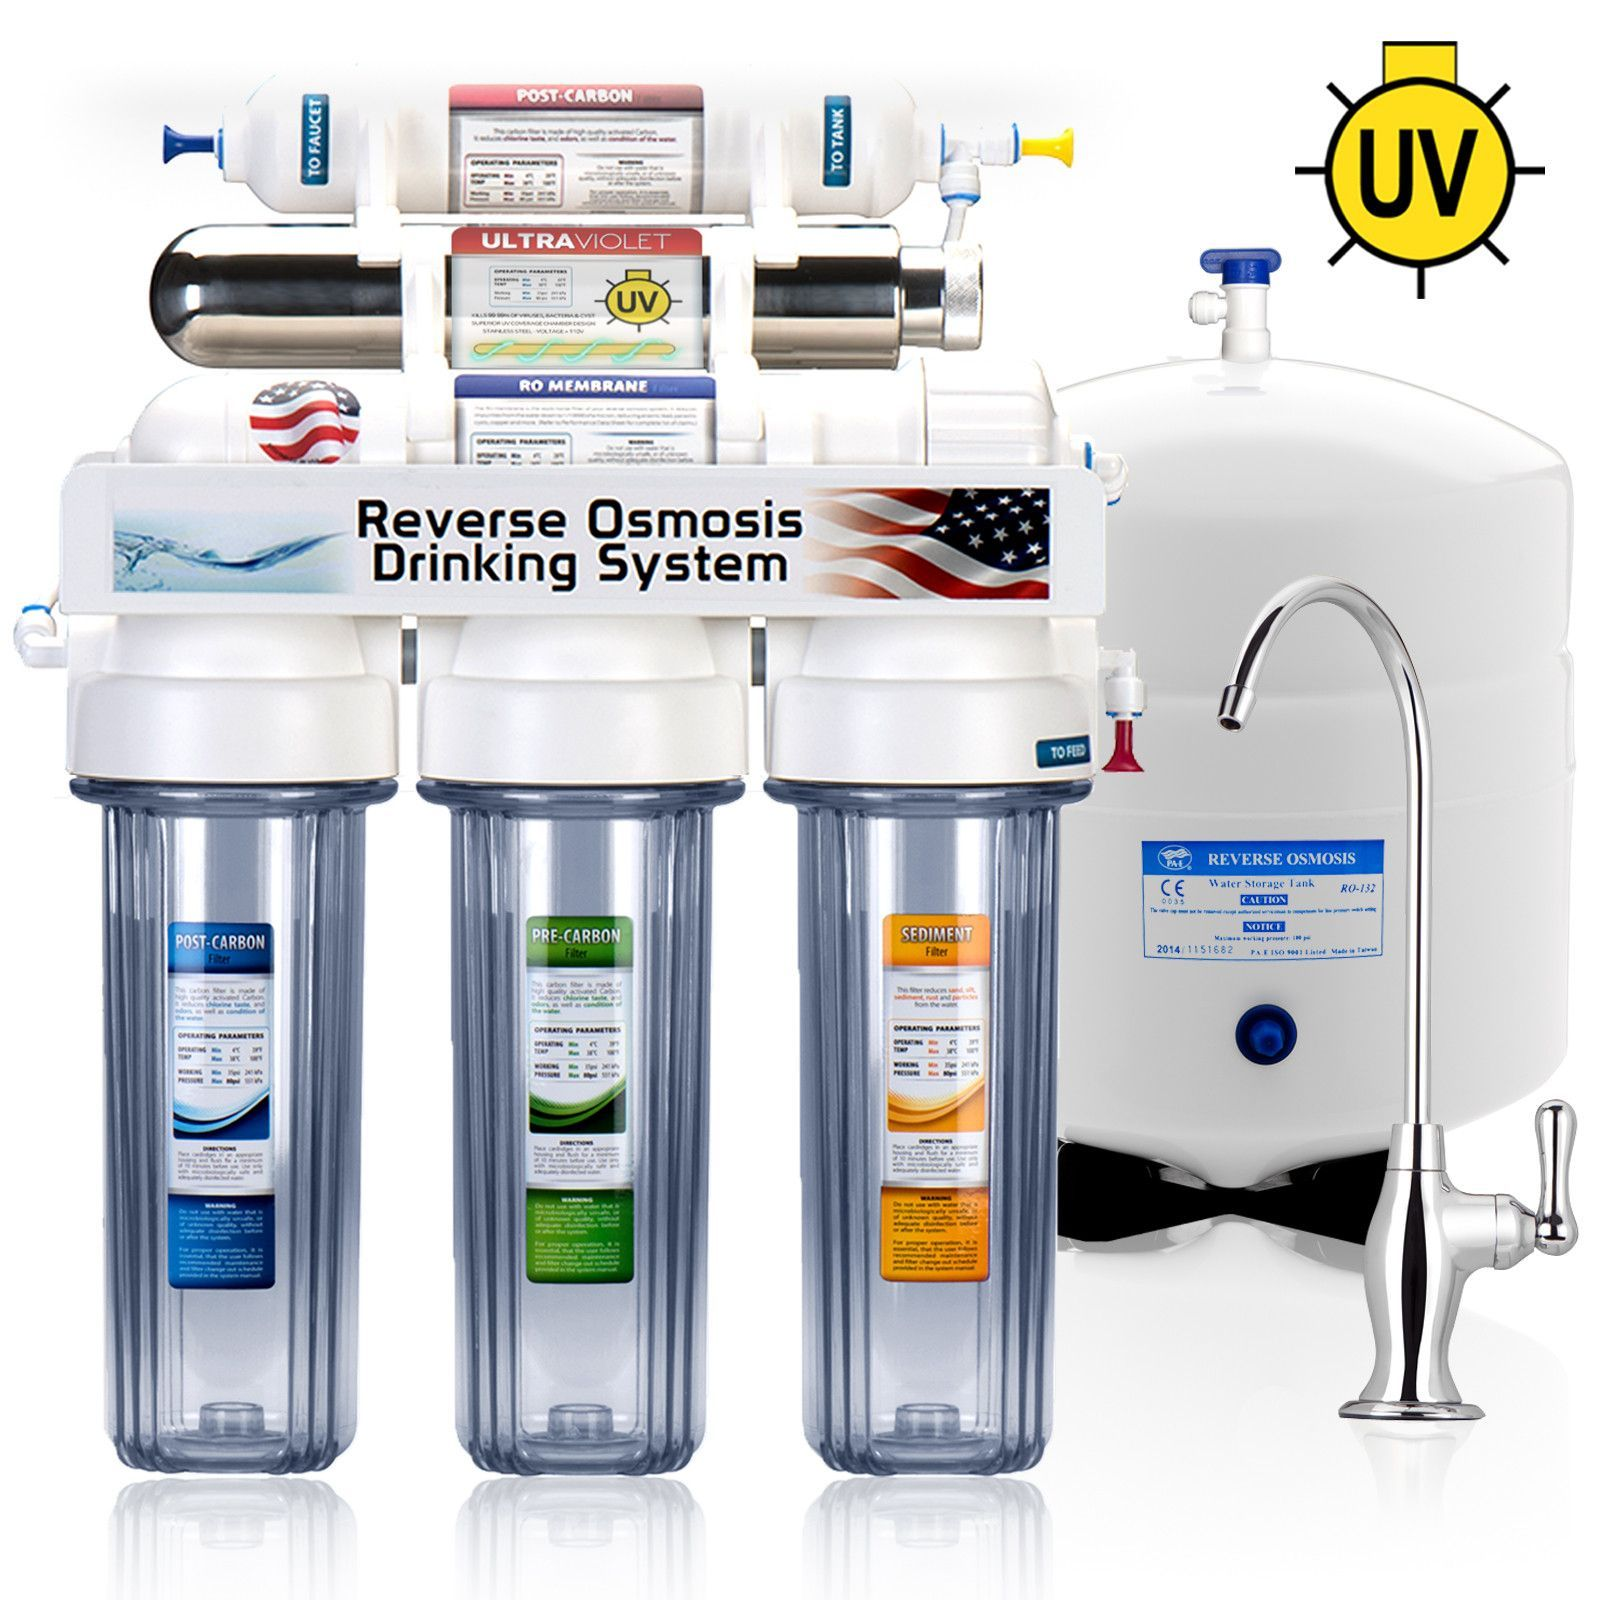 ROUV5DC 6 Stage UV Ultra Violet Sterilizer Reverse Osmosis Home